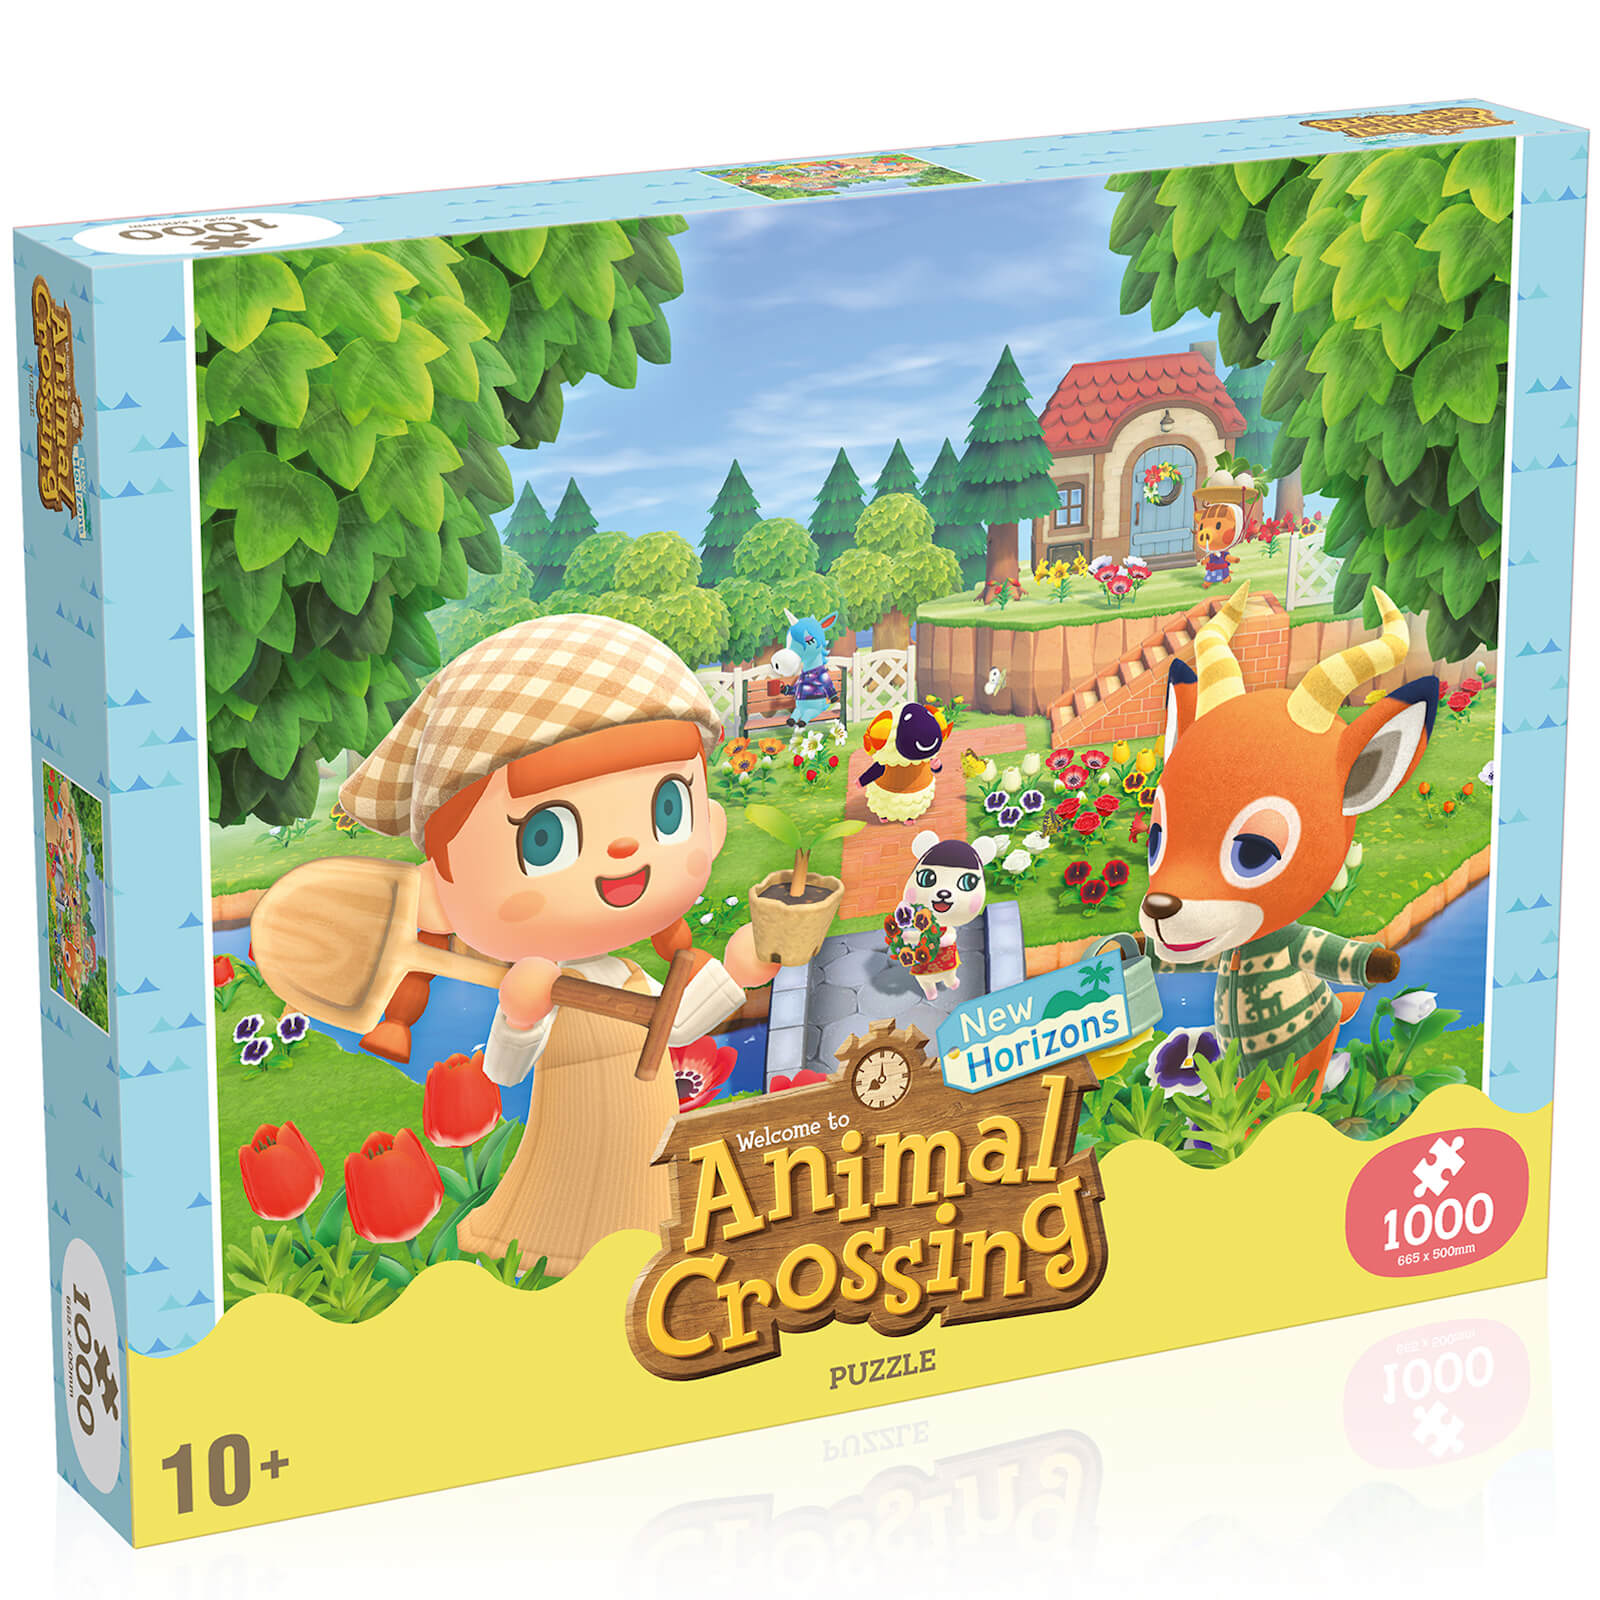 Image of 1000 Piece Jigsaw Puzzle - Animal Crossing Edition